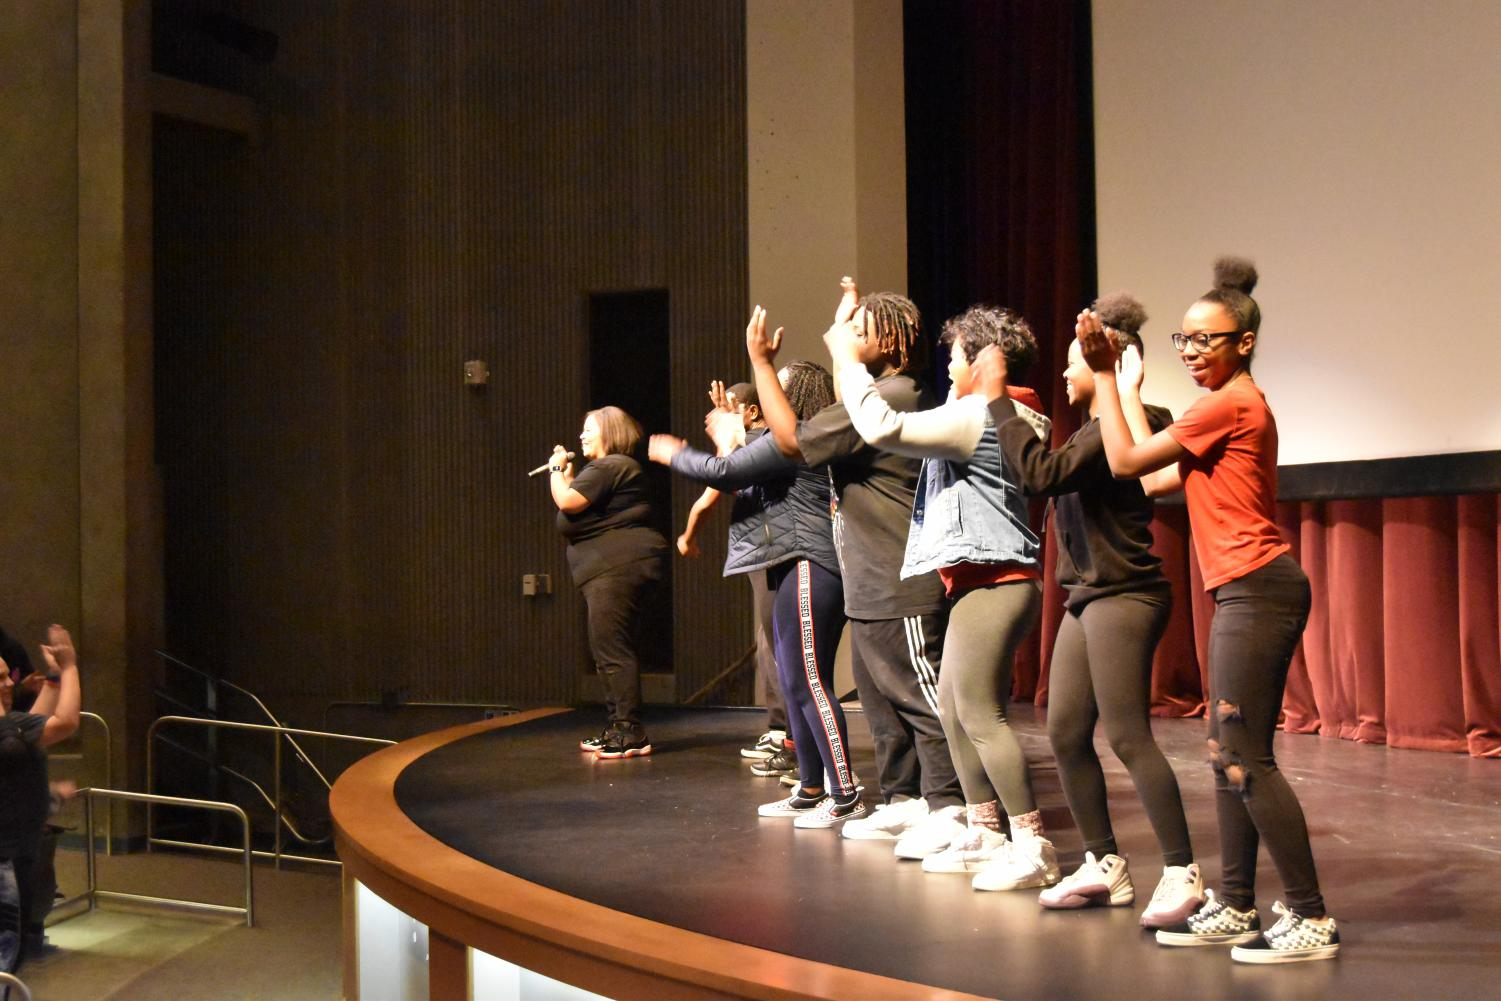 BSU+members+teaching+fellow+students+a+part+of+a+step+routine+that+they+all+performed+together.+This+is+showing+how+unity+can+happen+from+small+things.